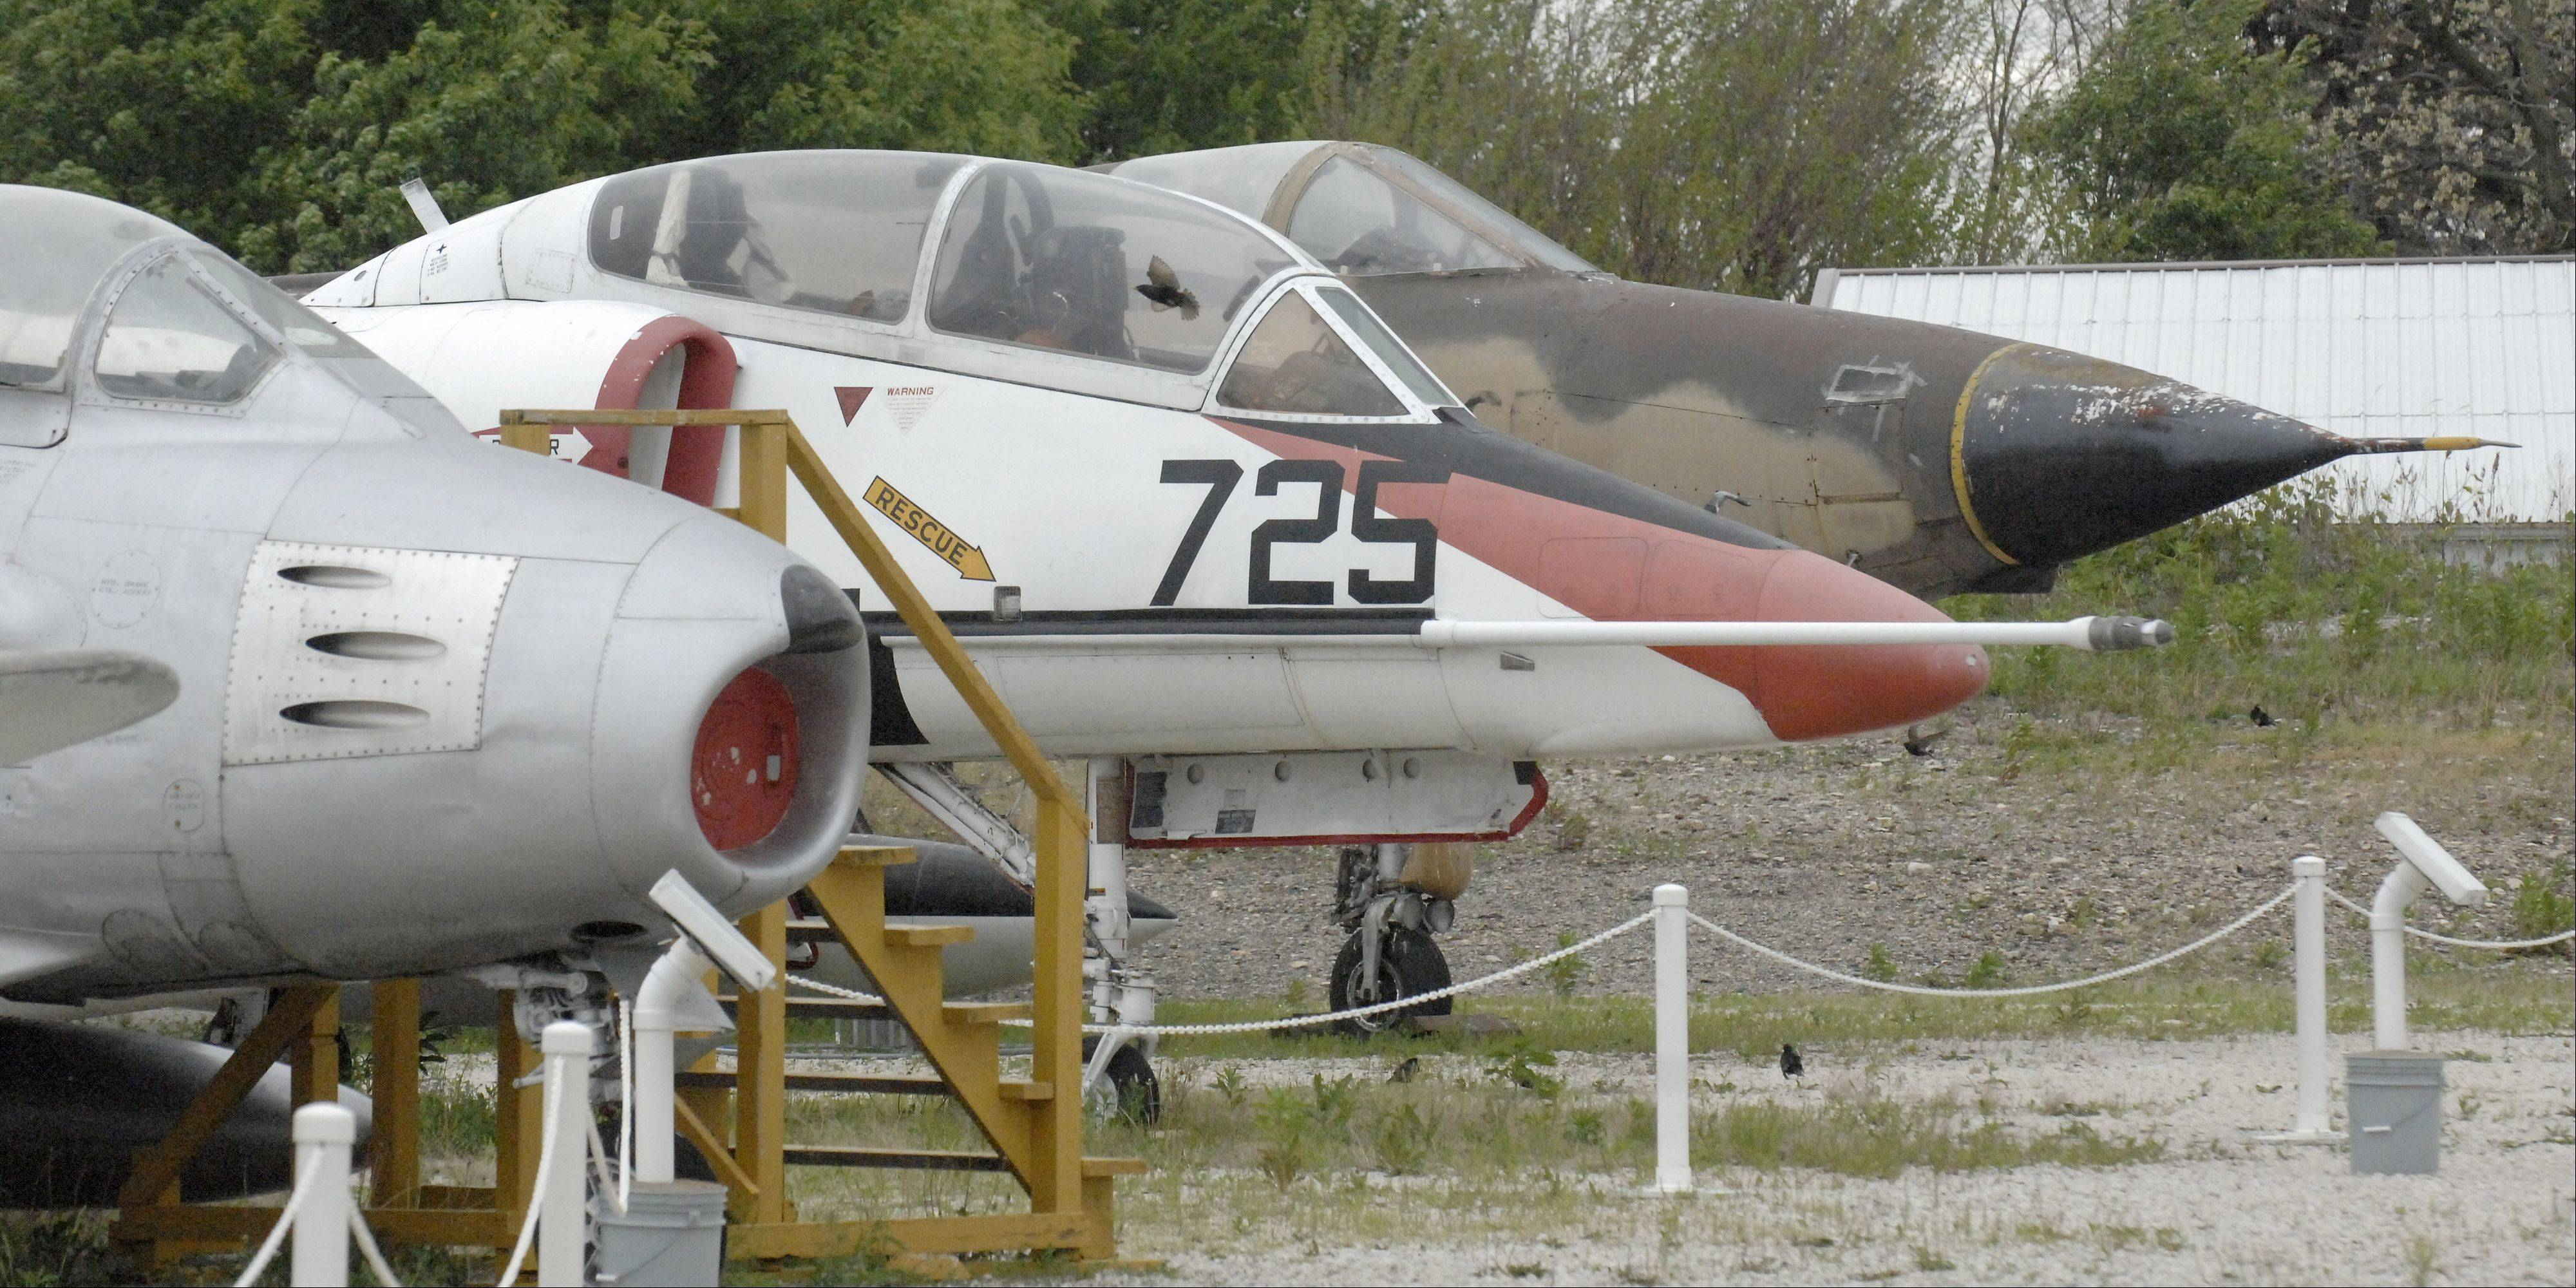 Historic planes will be on display Saturday at the Air Classics Museum of Aviation in Sugar Grove.